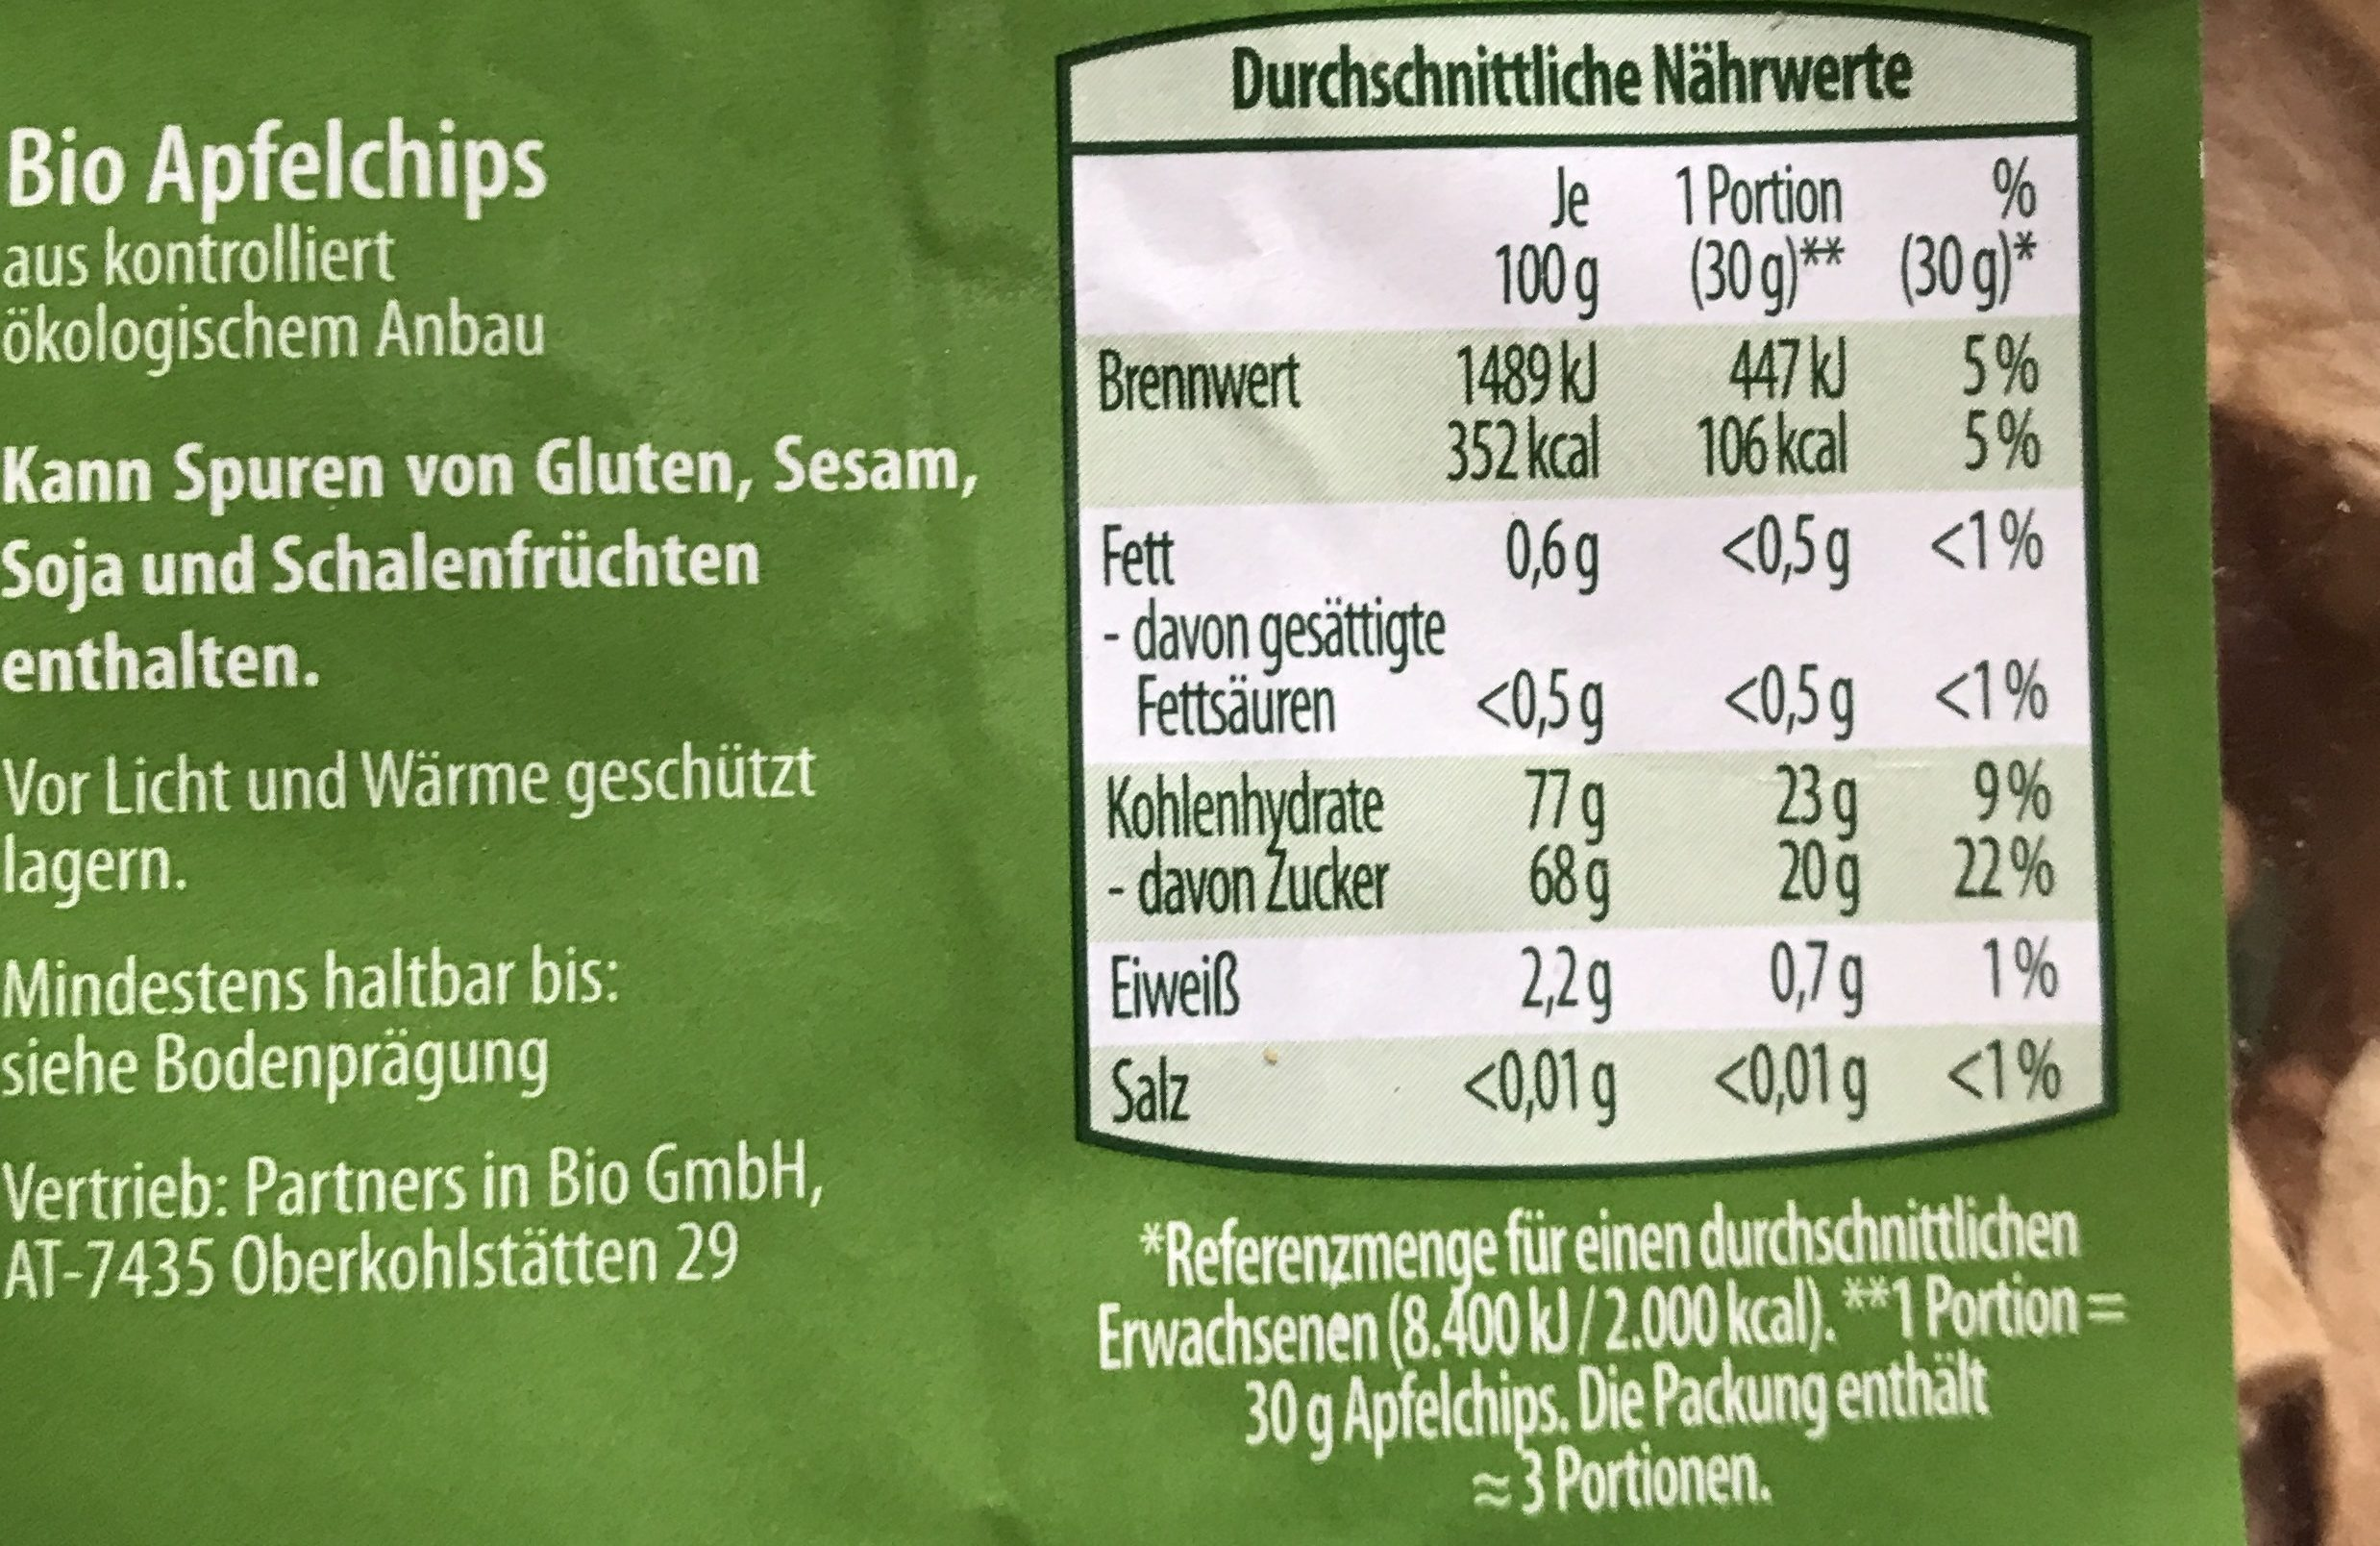 Bio Apfelchips - Ingredients